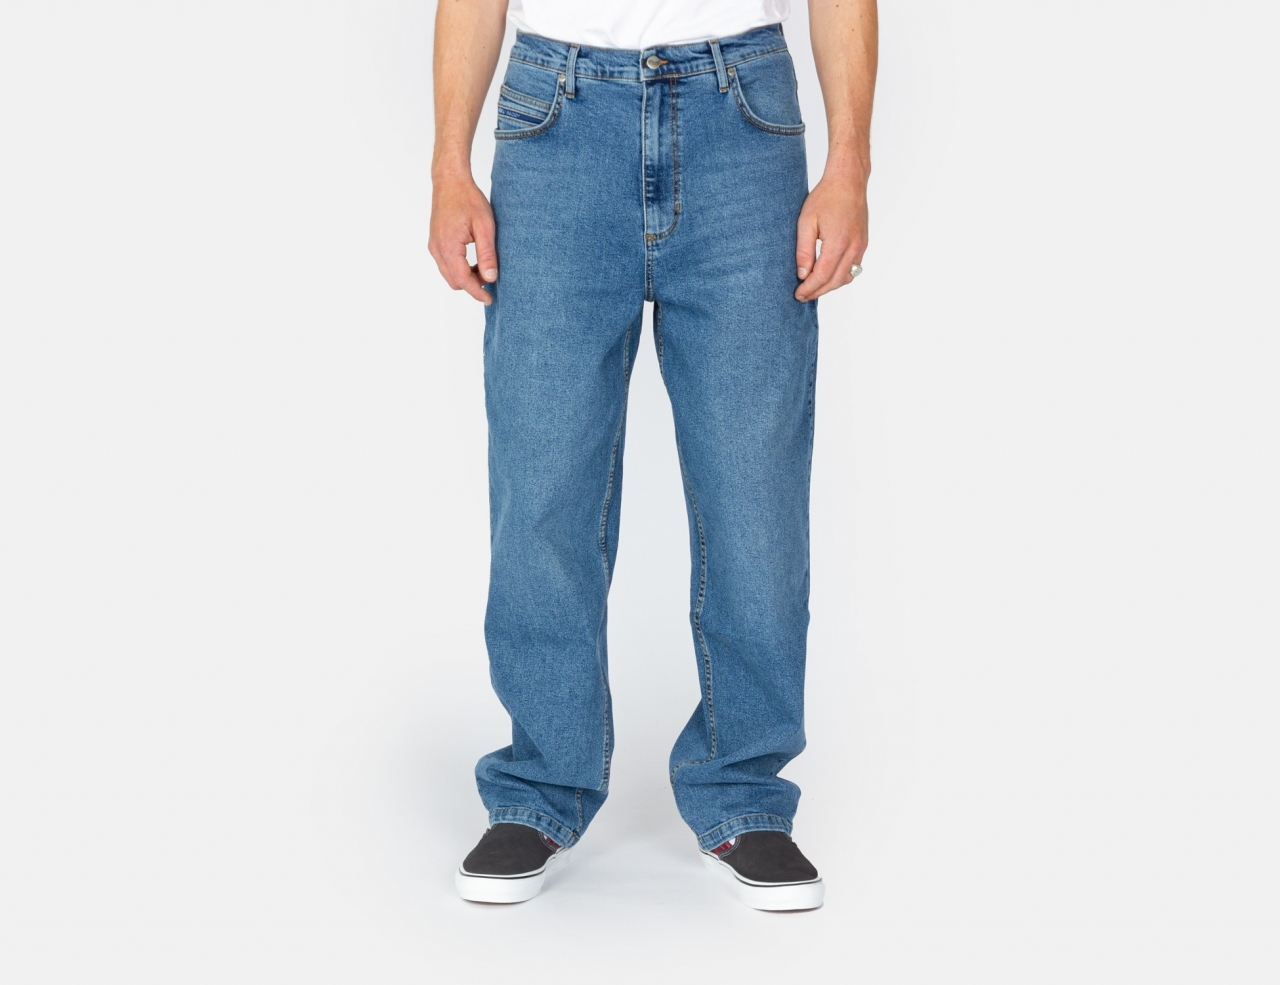 Reell Jeans Baggy Jeans - Retro Mid Blue